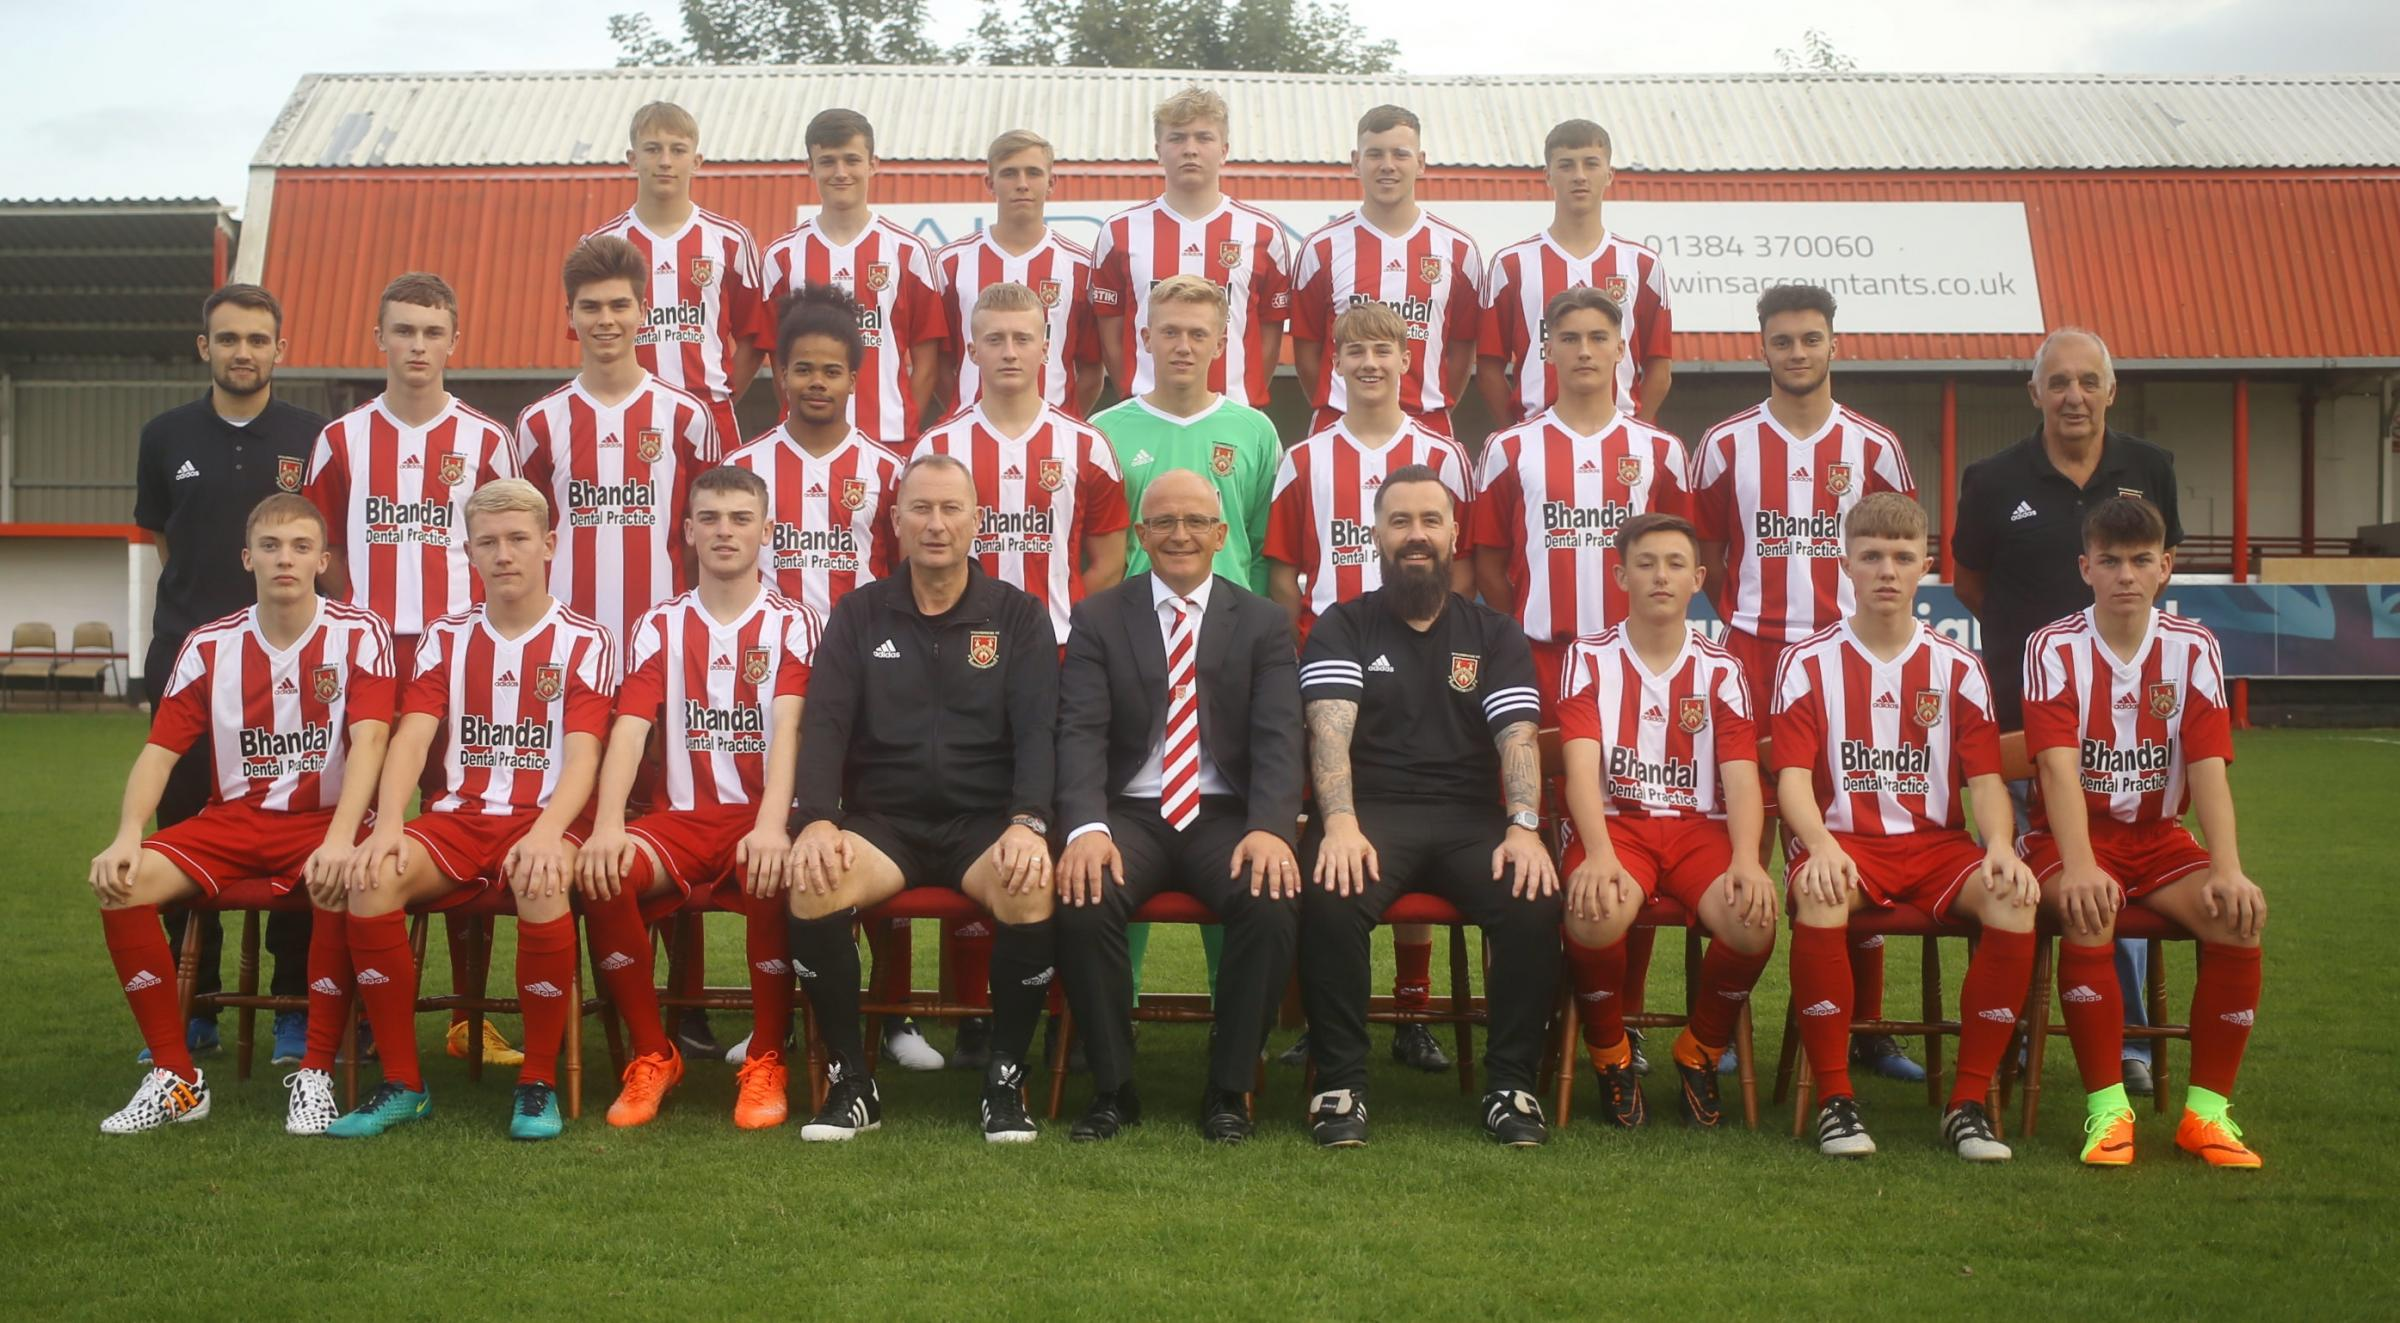 Stourbridge FC launched its new academy in September.